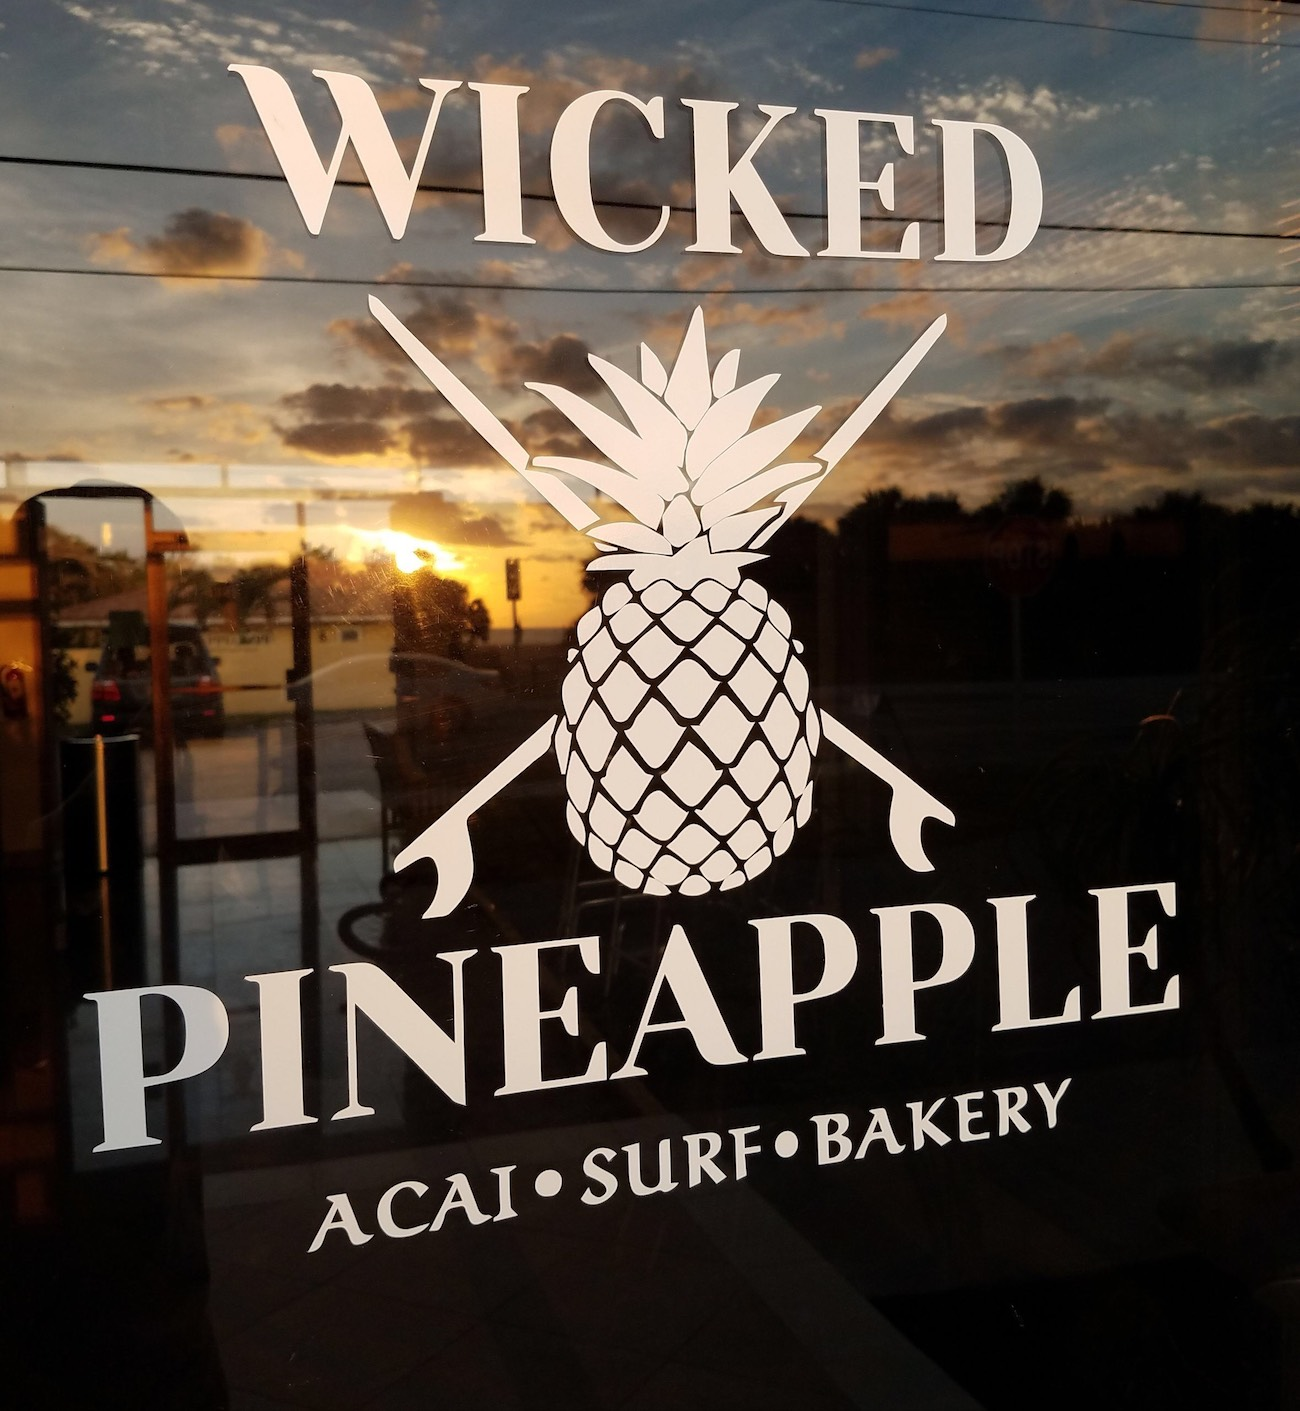 Wicked Pineapple